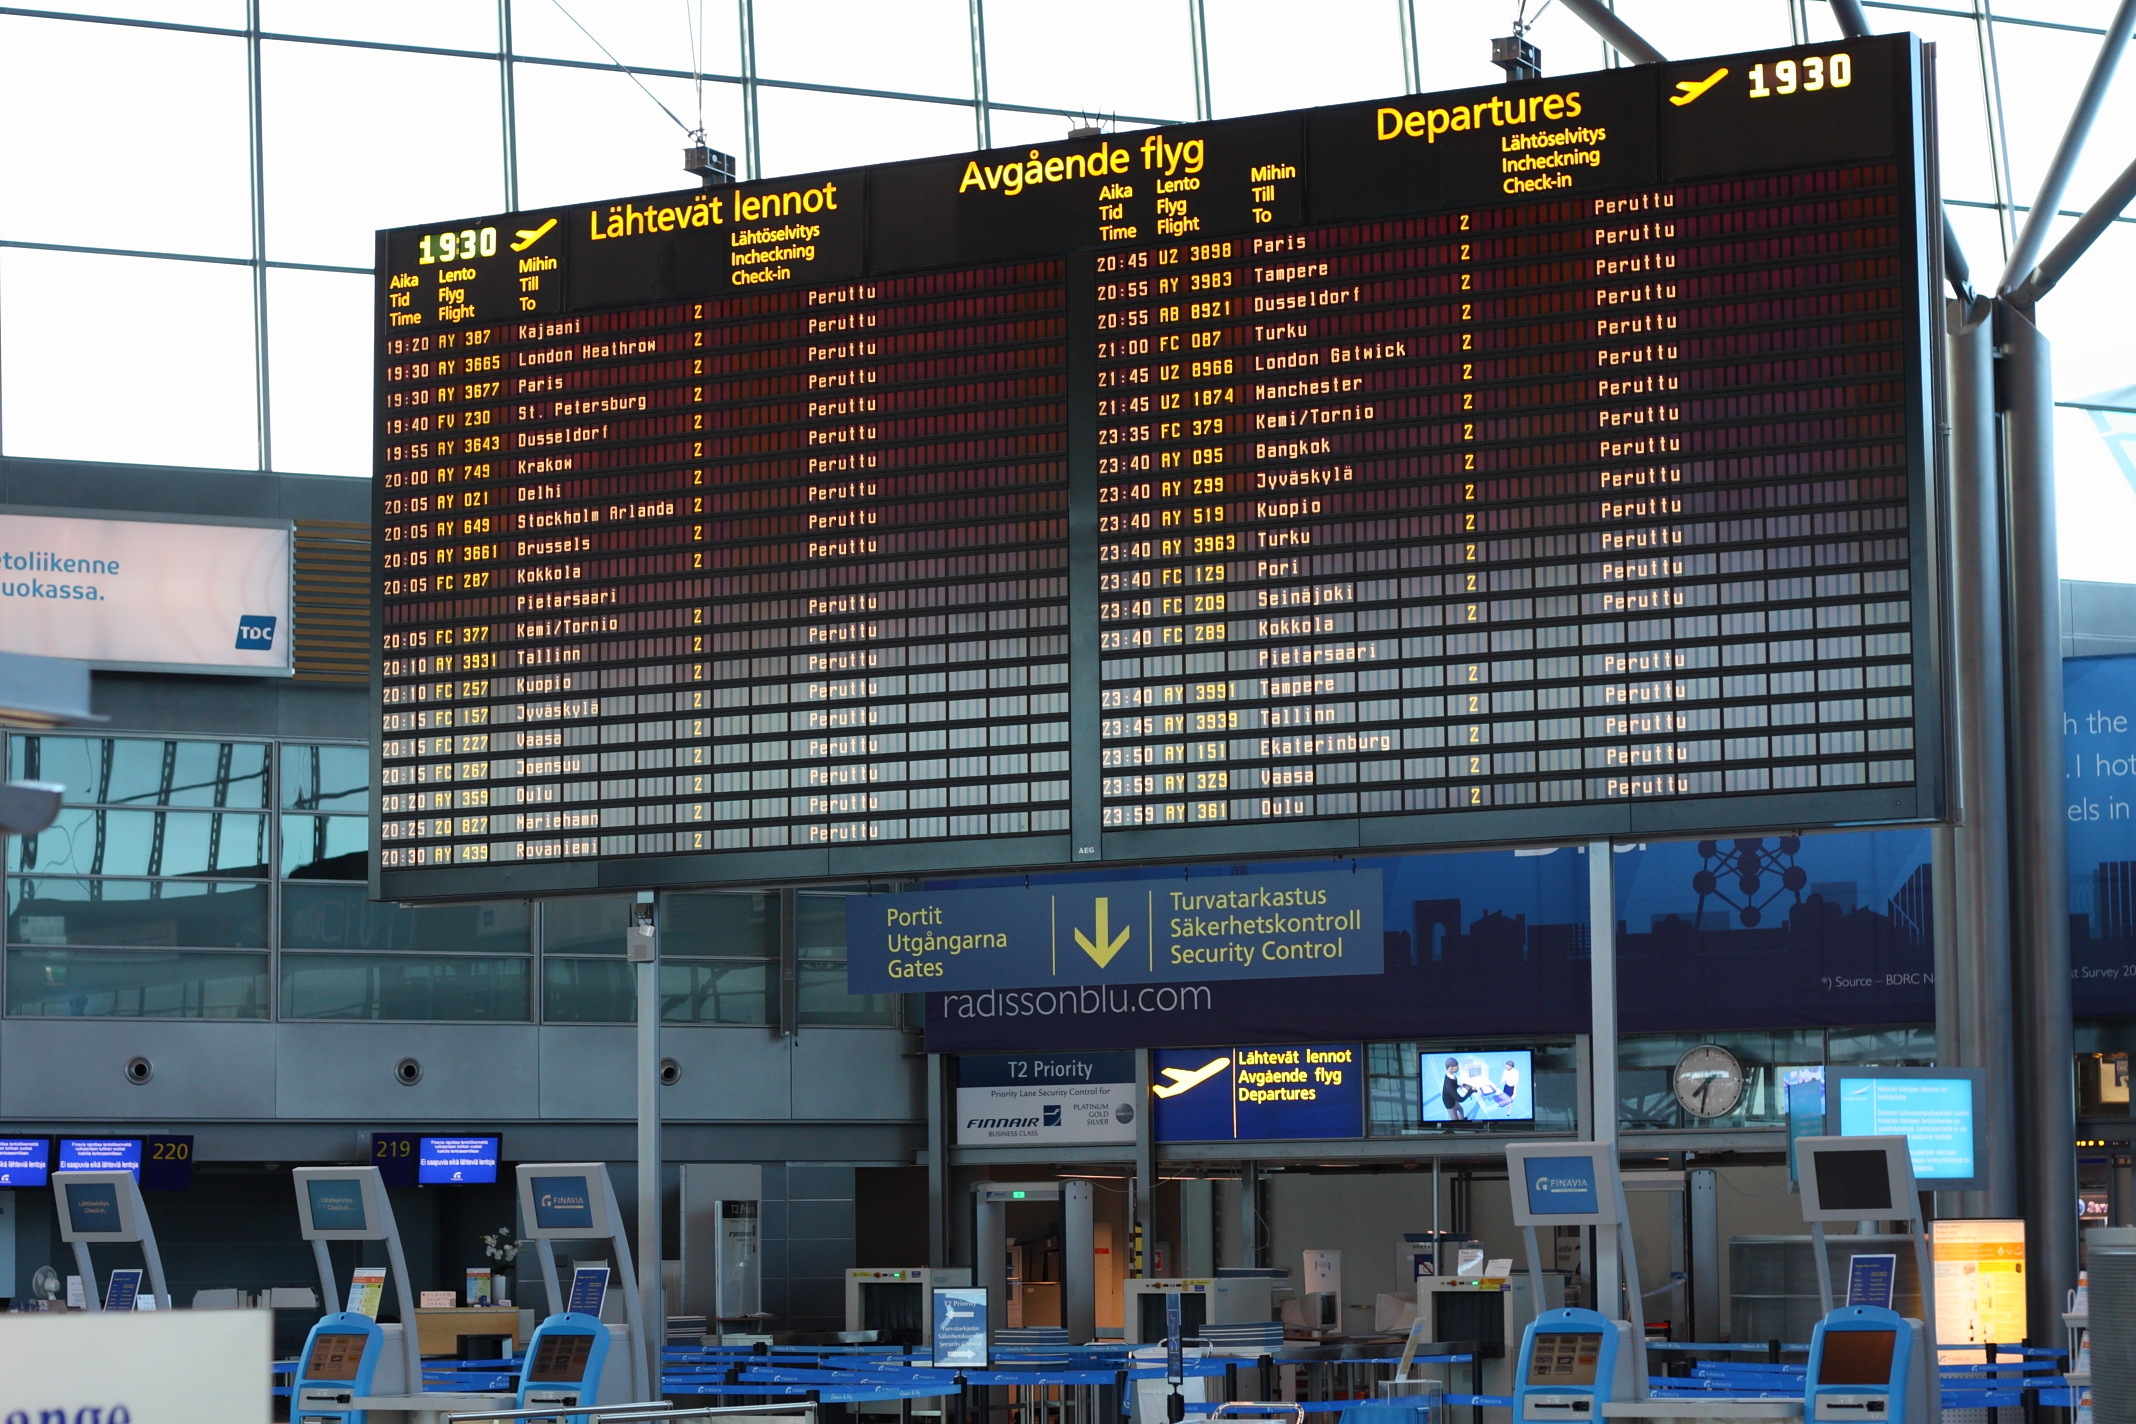 Related Keywords & Suggestions for helsinki airport departures